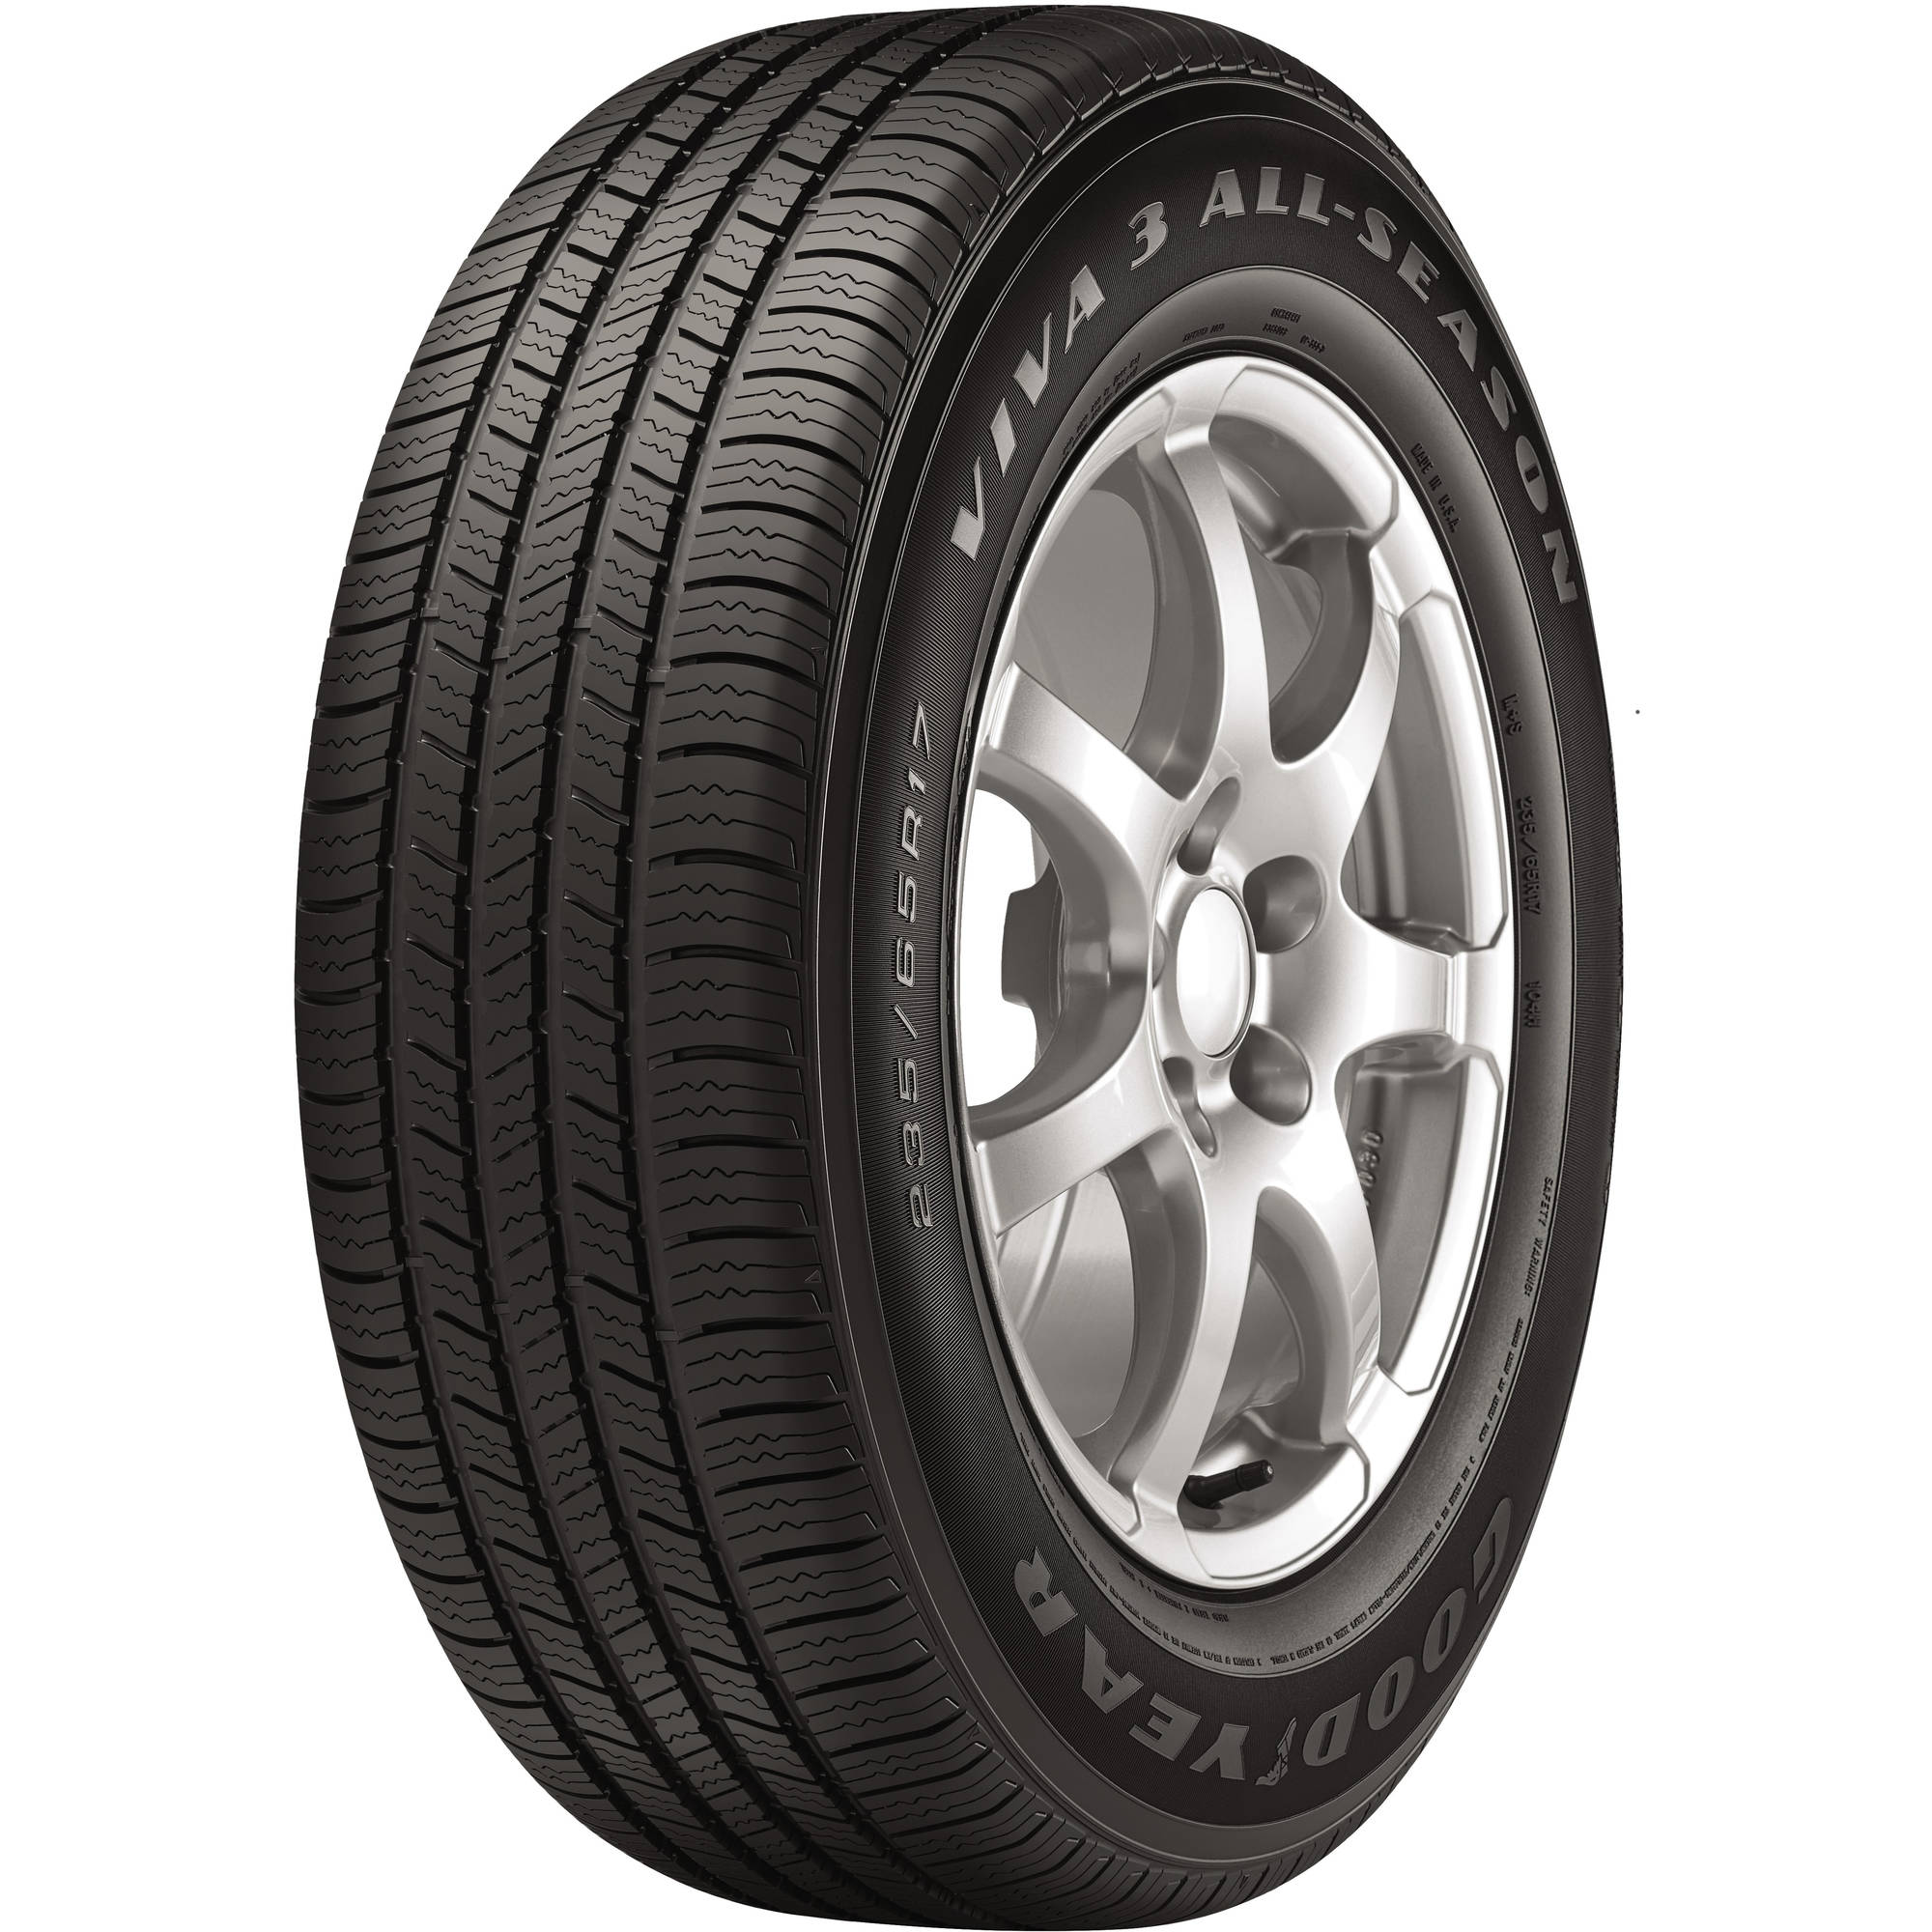 Goodyear Viva 3 All-Season Tire 235/60R17 102T